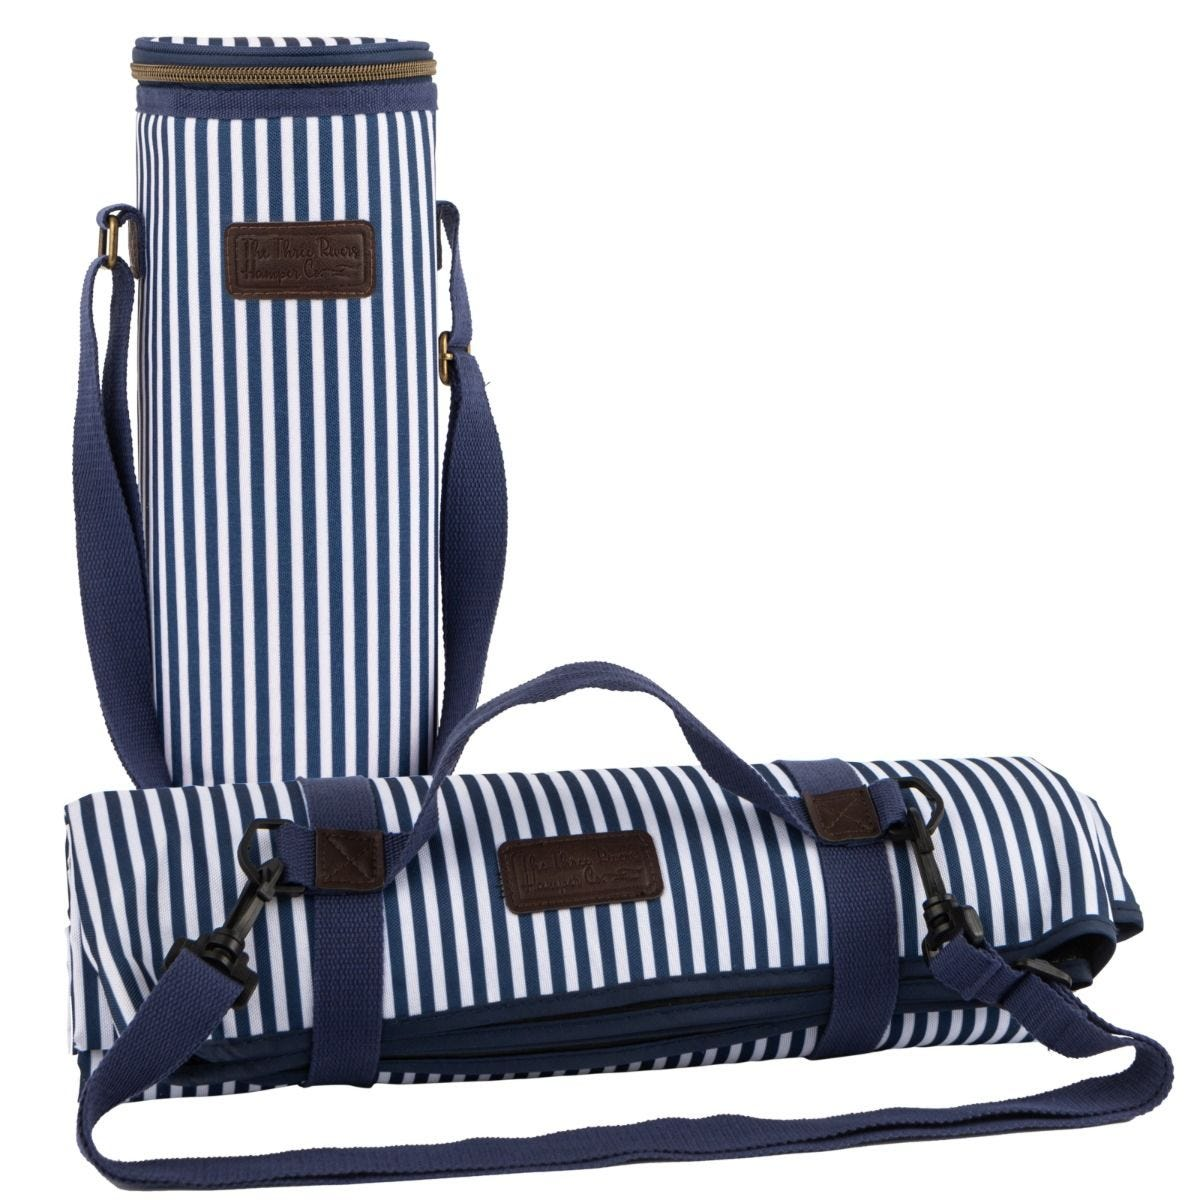 Three Rivers Striped Picnic Blanket & Insulated Bottle Bag - Navy/White